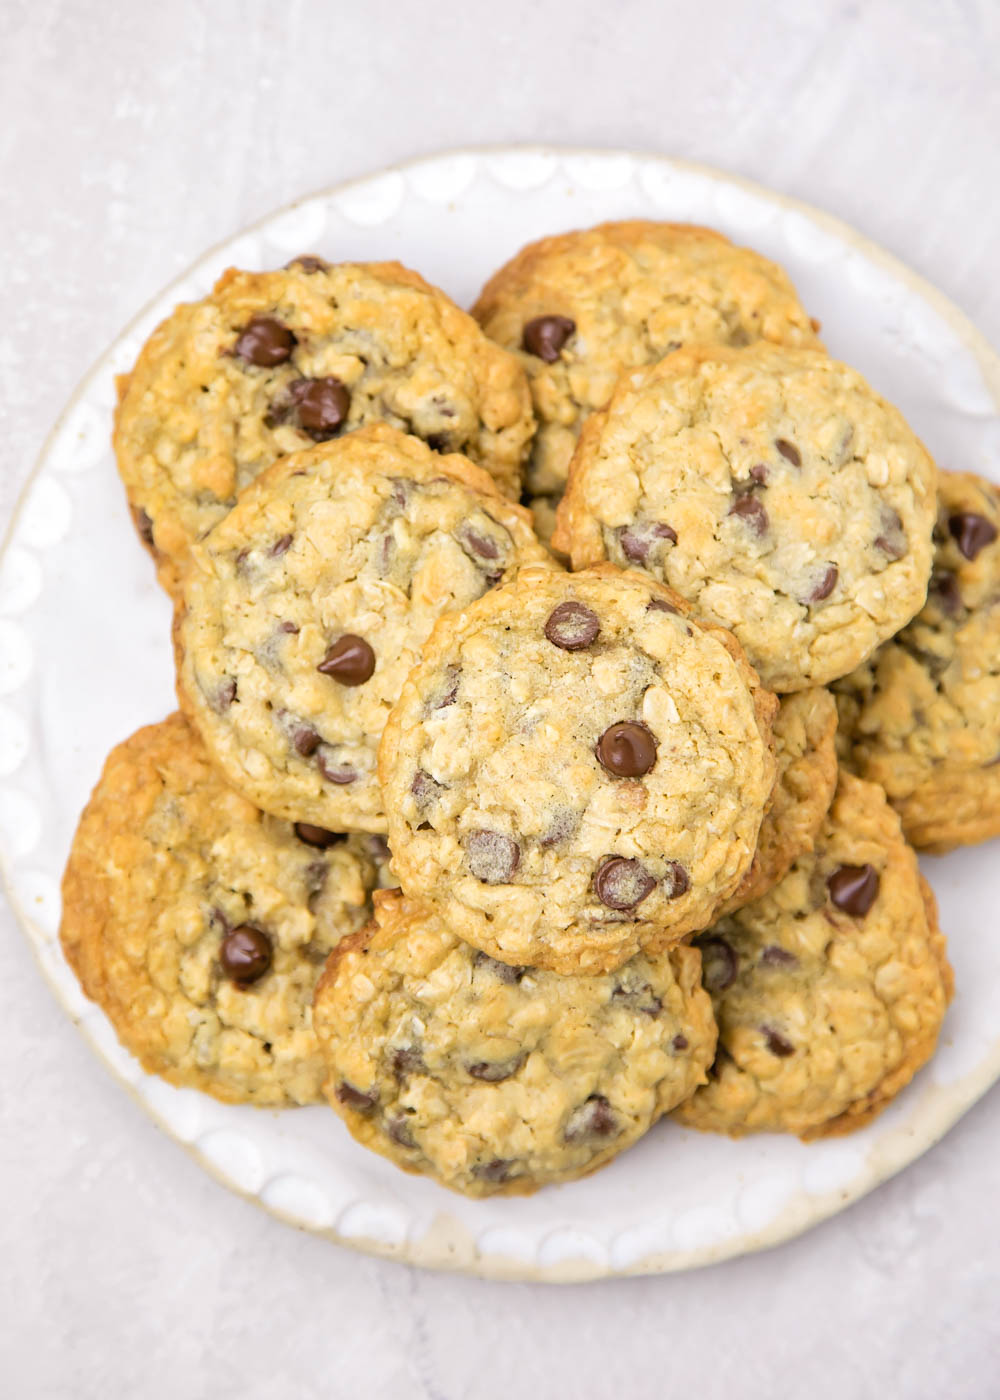 Oatmeal Chocolate Chip Cookie Recipe on a plate